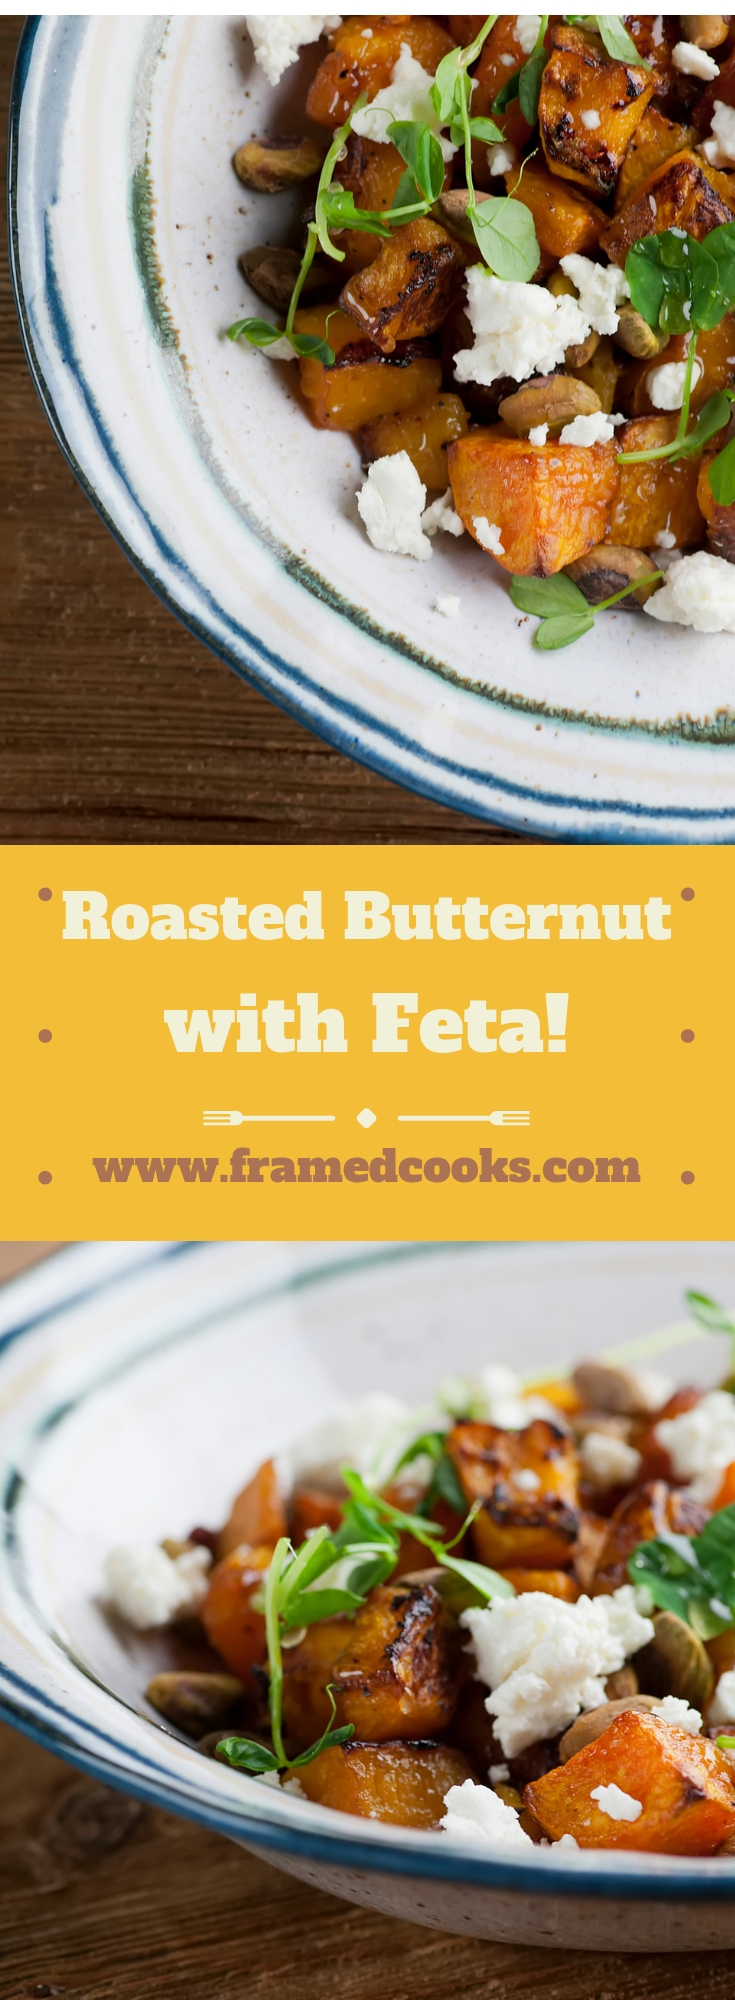 This easy recipe for roasted butternut squash with feta is perfect for your Thanksgiving table, or any time you want a flavorful veggie for supper!